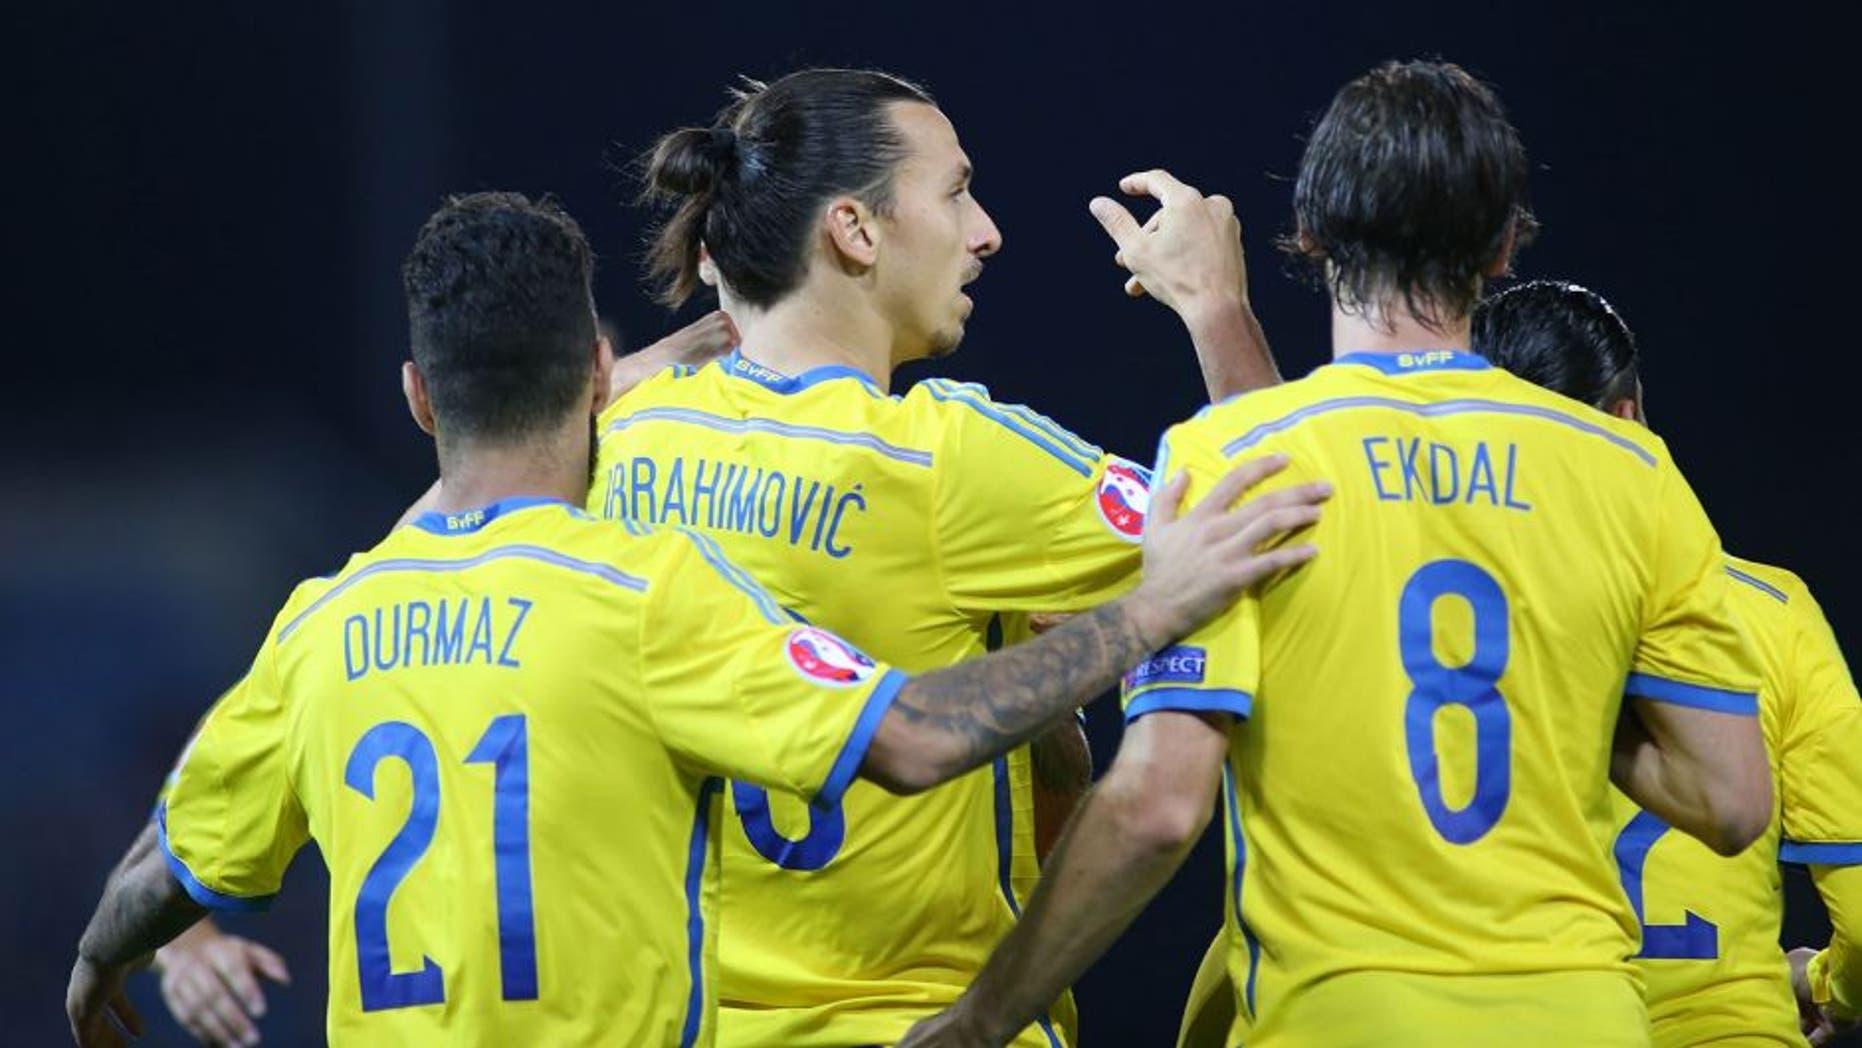 Swedens Zlatan Ibrahimovic (2nd L) celebrates with teammates Jimmy Durmaz (L) and Albin Ekdal after scoring his team's second goal during the Euro 2016 Group G qualifying football match between Liechtenstein and Sweden at the Rheinpark stadium in Vaduz on October 9, 2015. AFP PHOTO / MICHELE LIMINA (Photo credit should read MICHELE LIMINA/AFP/Getty Images)